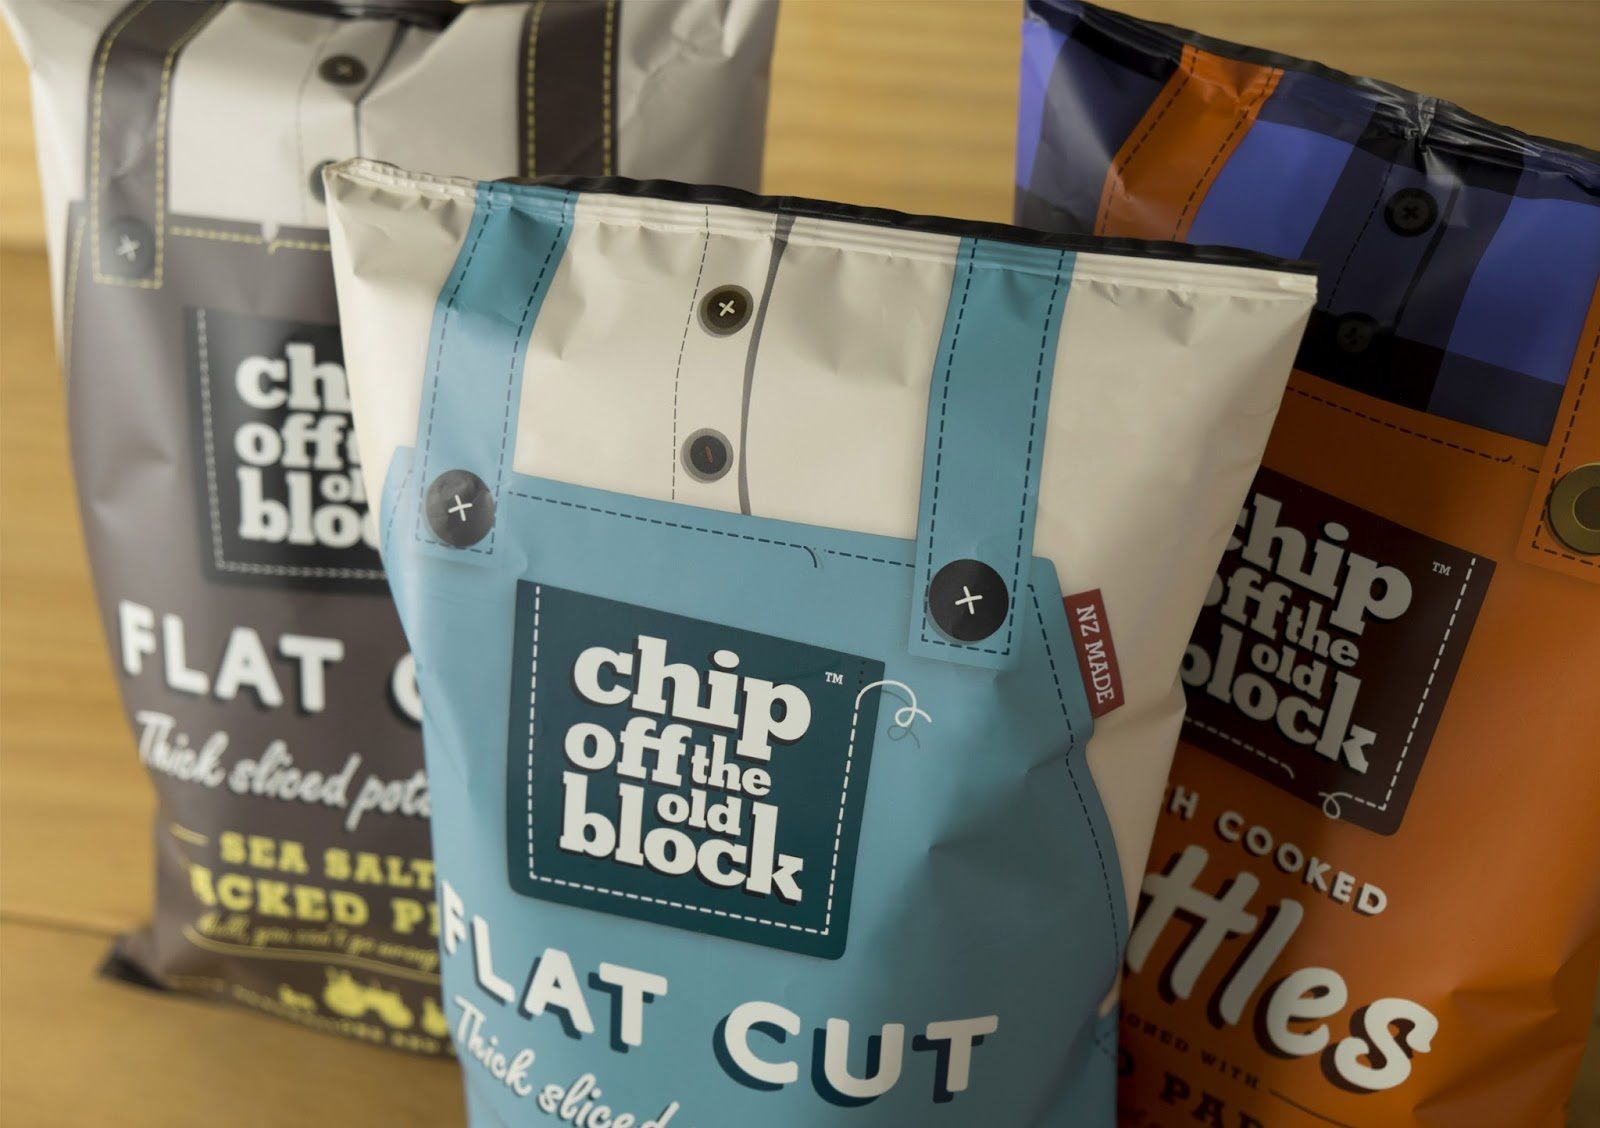 Chip Off The Old Block (chips) | Design : phd3 Limited, Nouvelle-Zélande (juillet 2016)